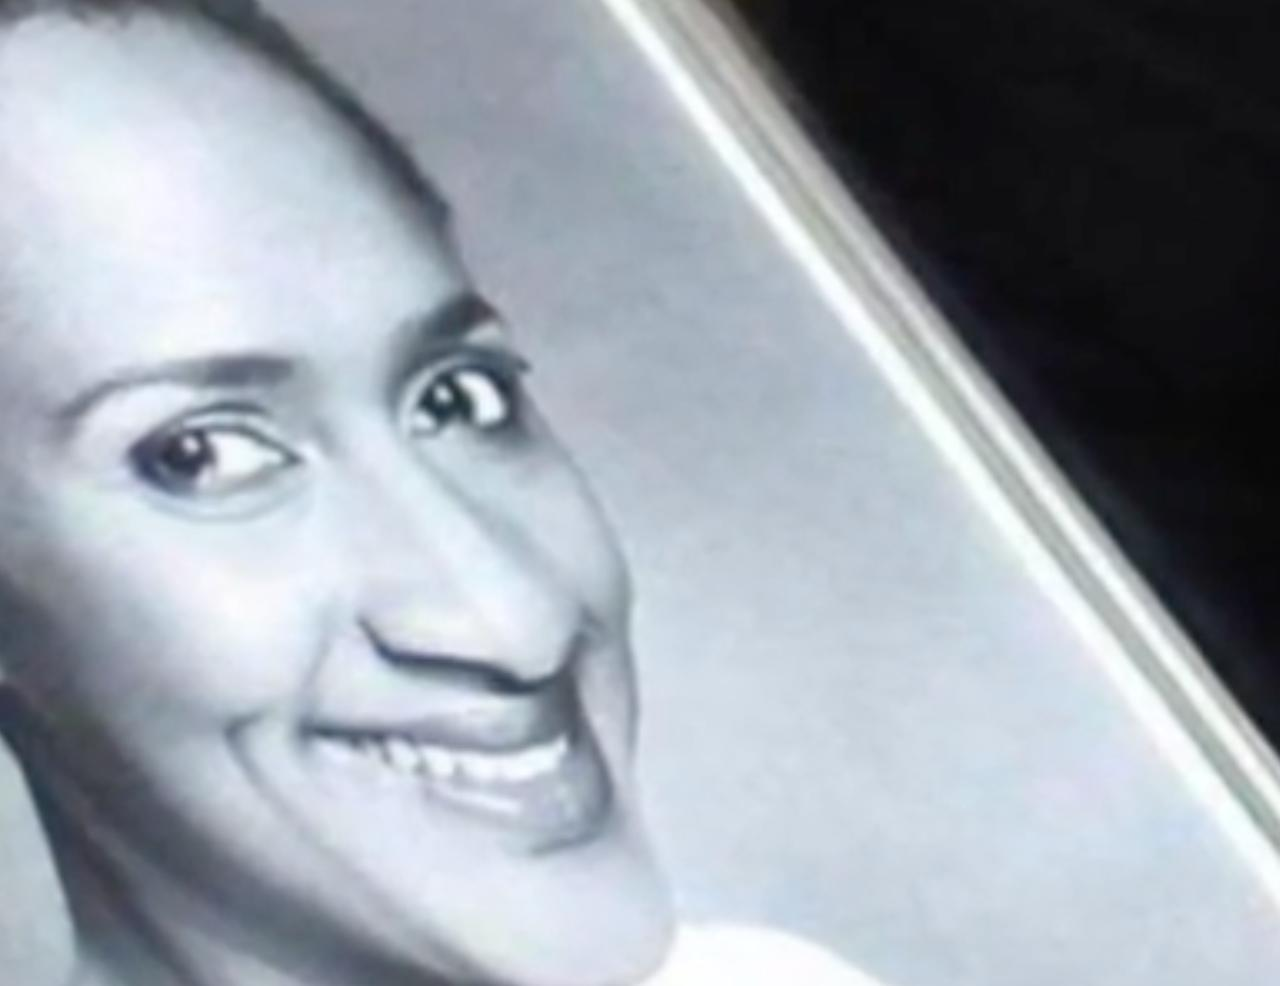 Story of Margaret Mattic, a Detroit woman killed in 9/11, creates unexpected friendship